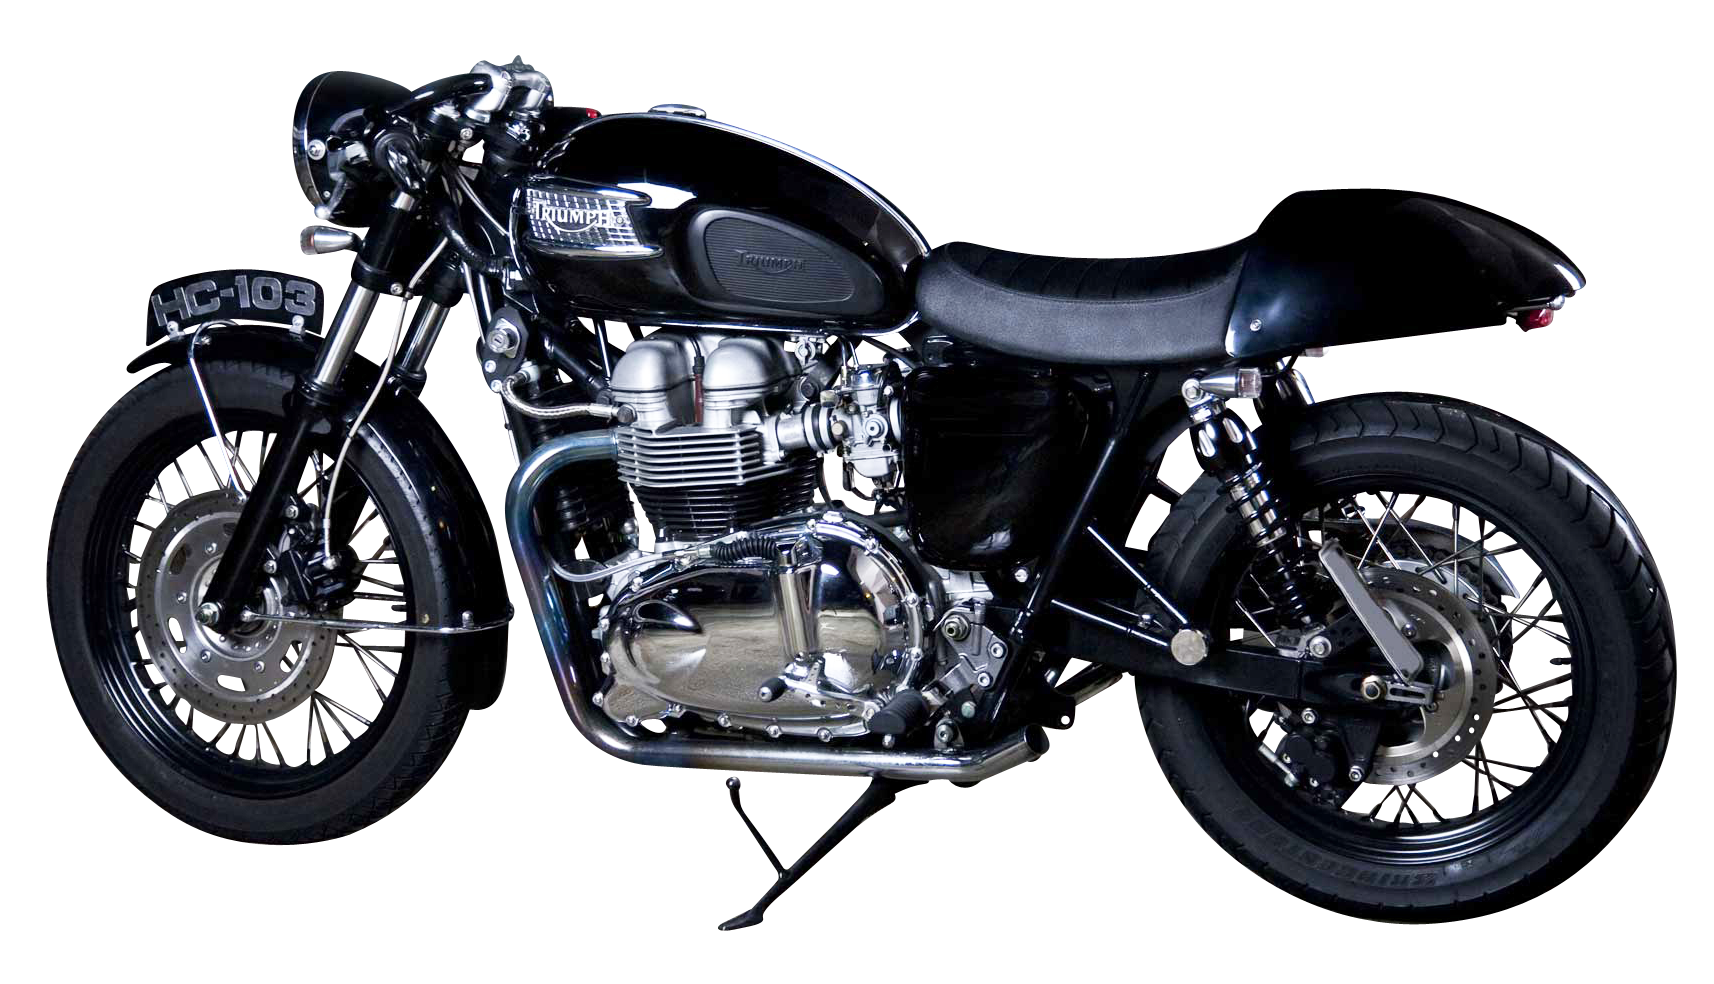 Motorcycle clipart triumph motorcycle. Hc bike png image